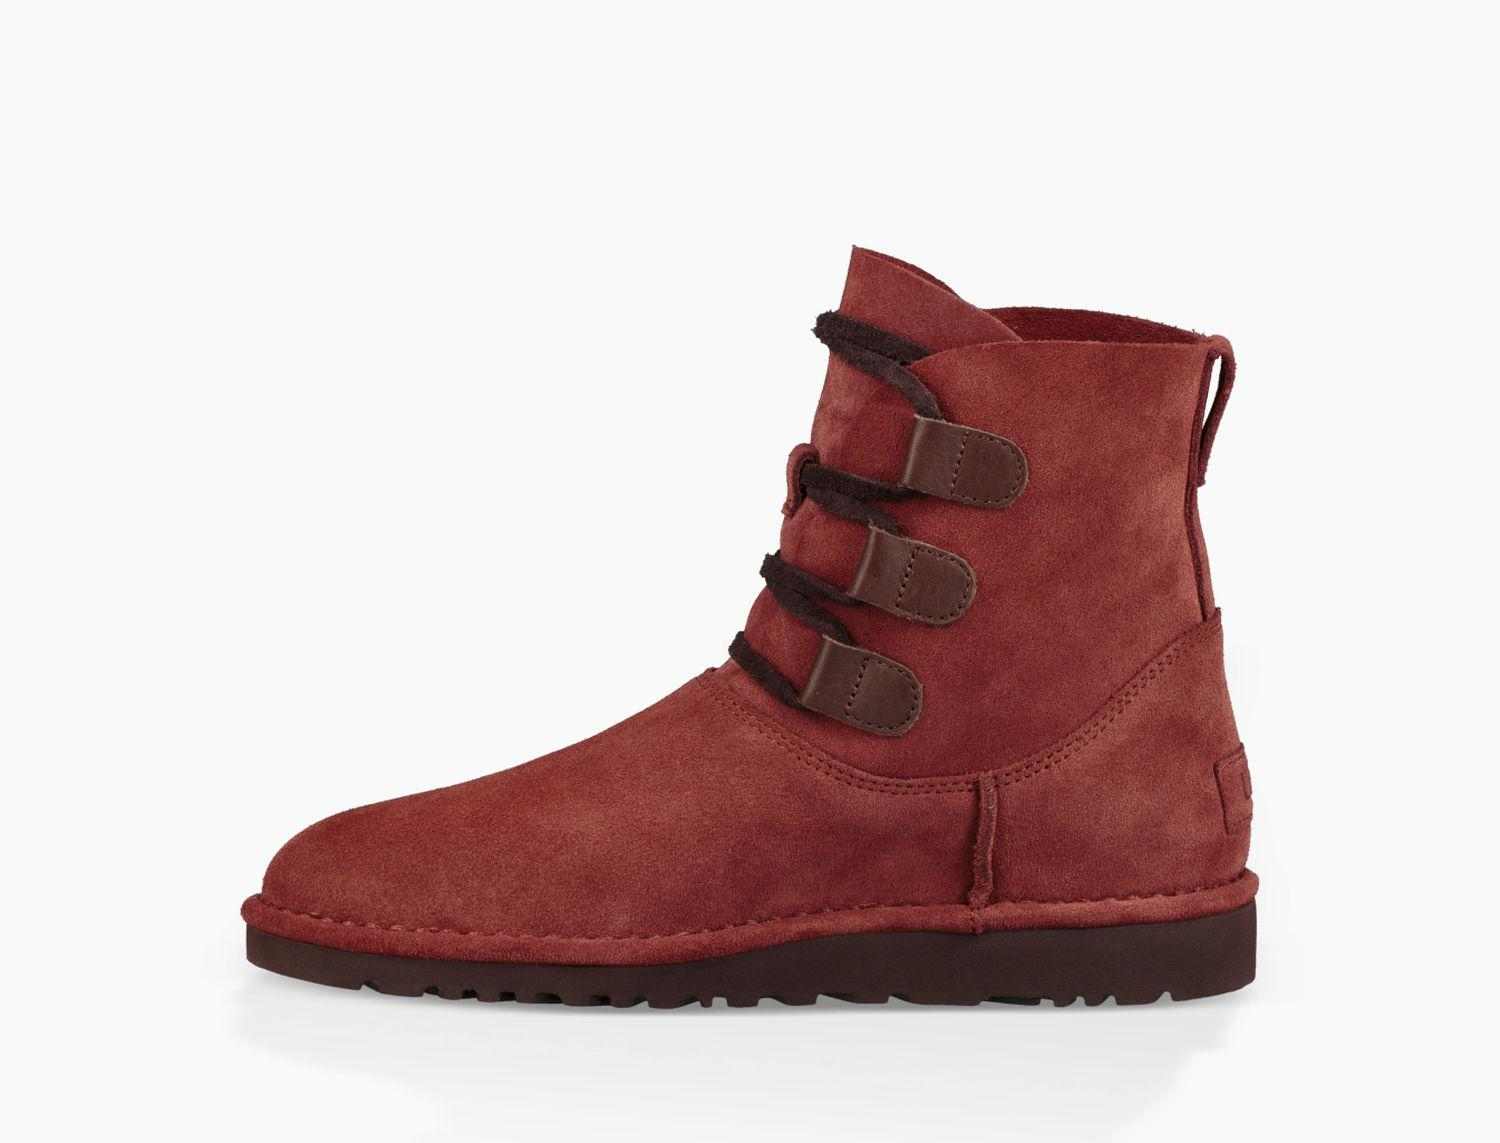 0b1be2c68ee Ugg Red Women's Elvi